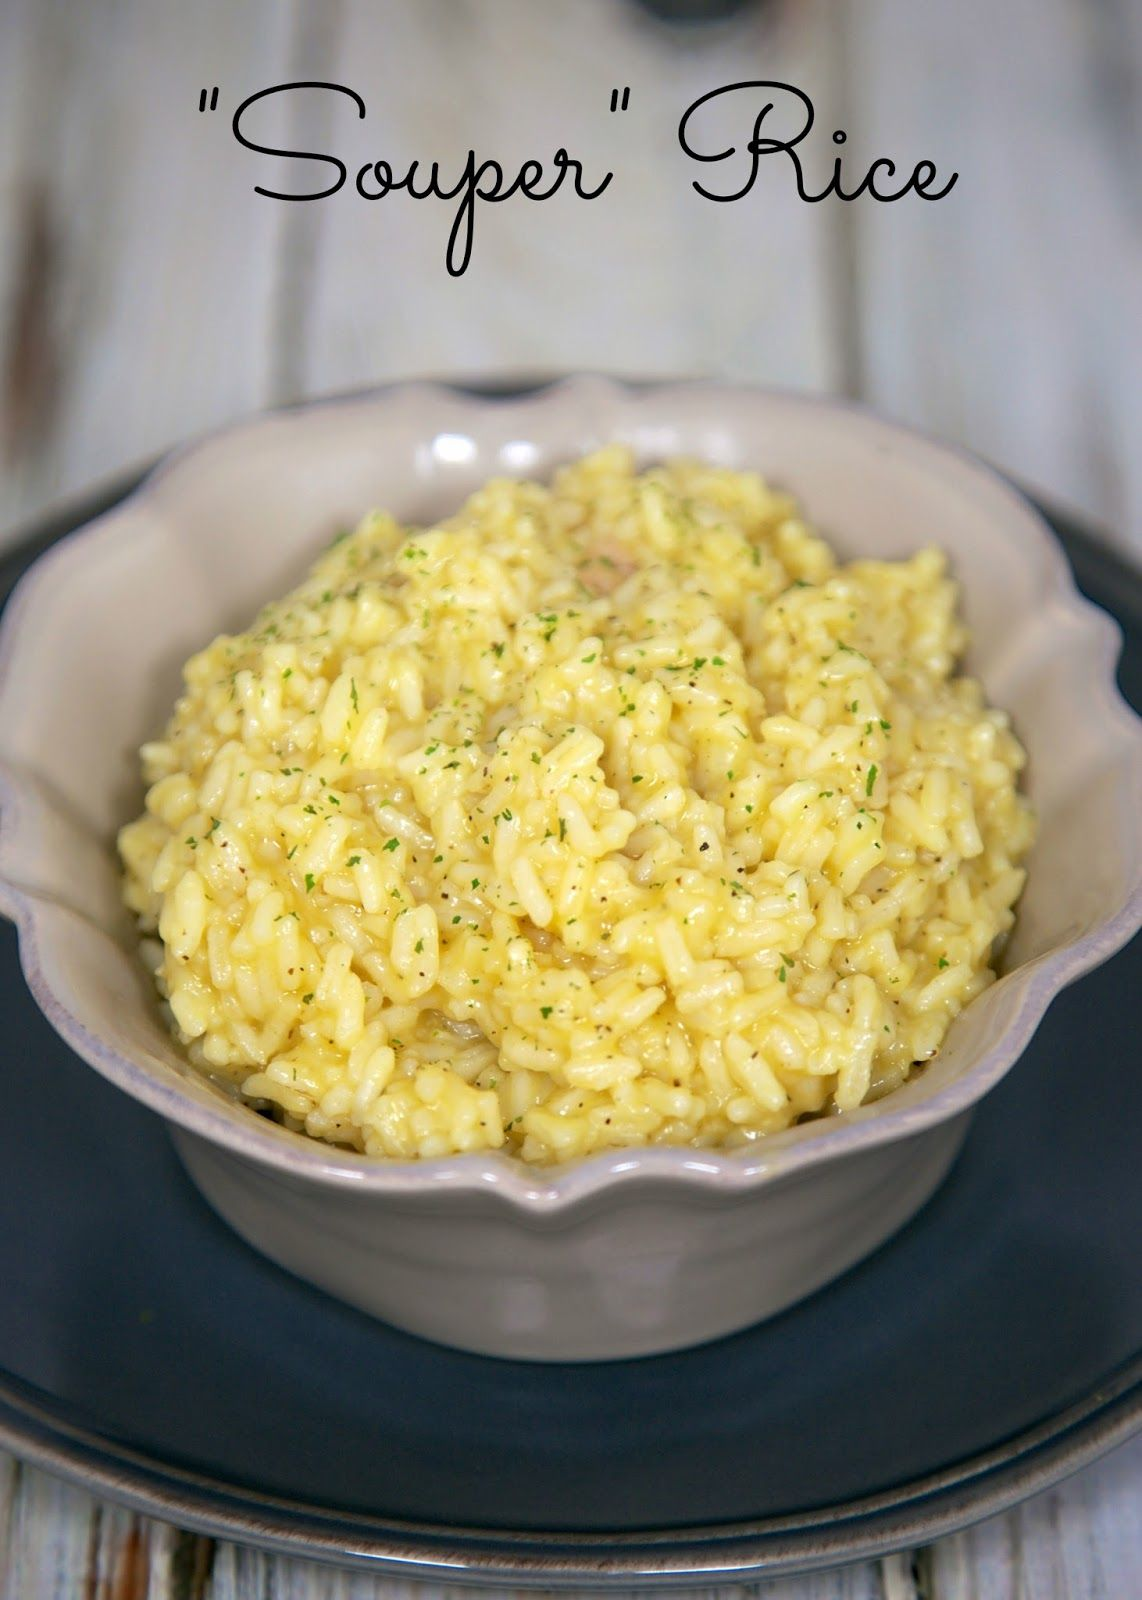 Souper rice quick creamy cheater risotto recipe made with minute souper rice quick creamy cheater risotto recipe made with minute rice cream of chicken soup chicken broth and parmesan cheese ready in 10 minutes forumfinder Images